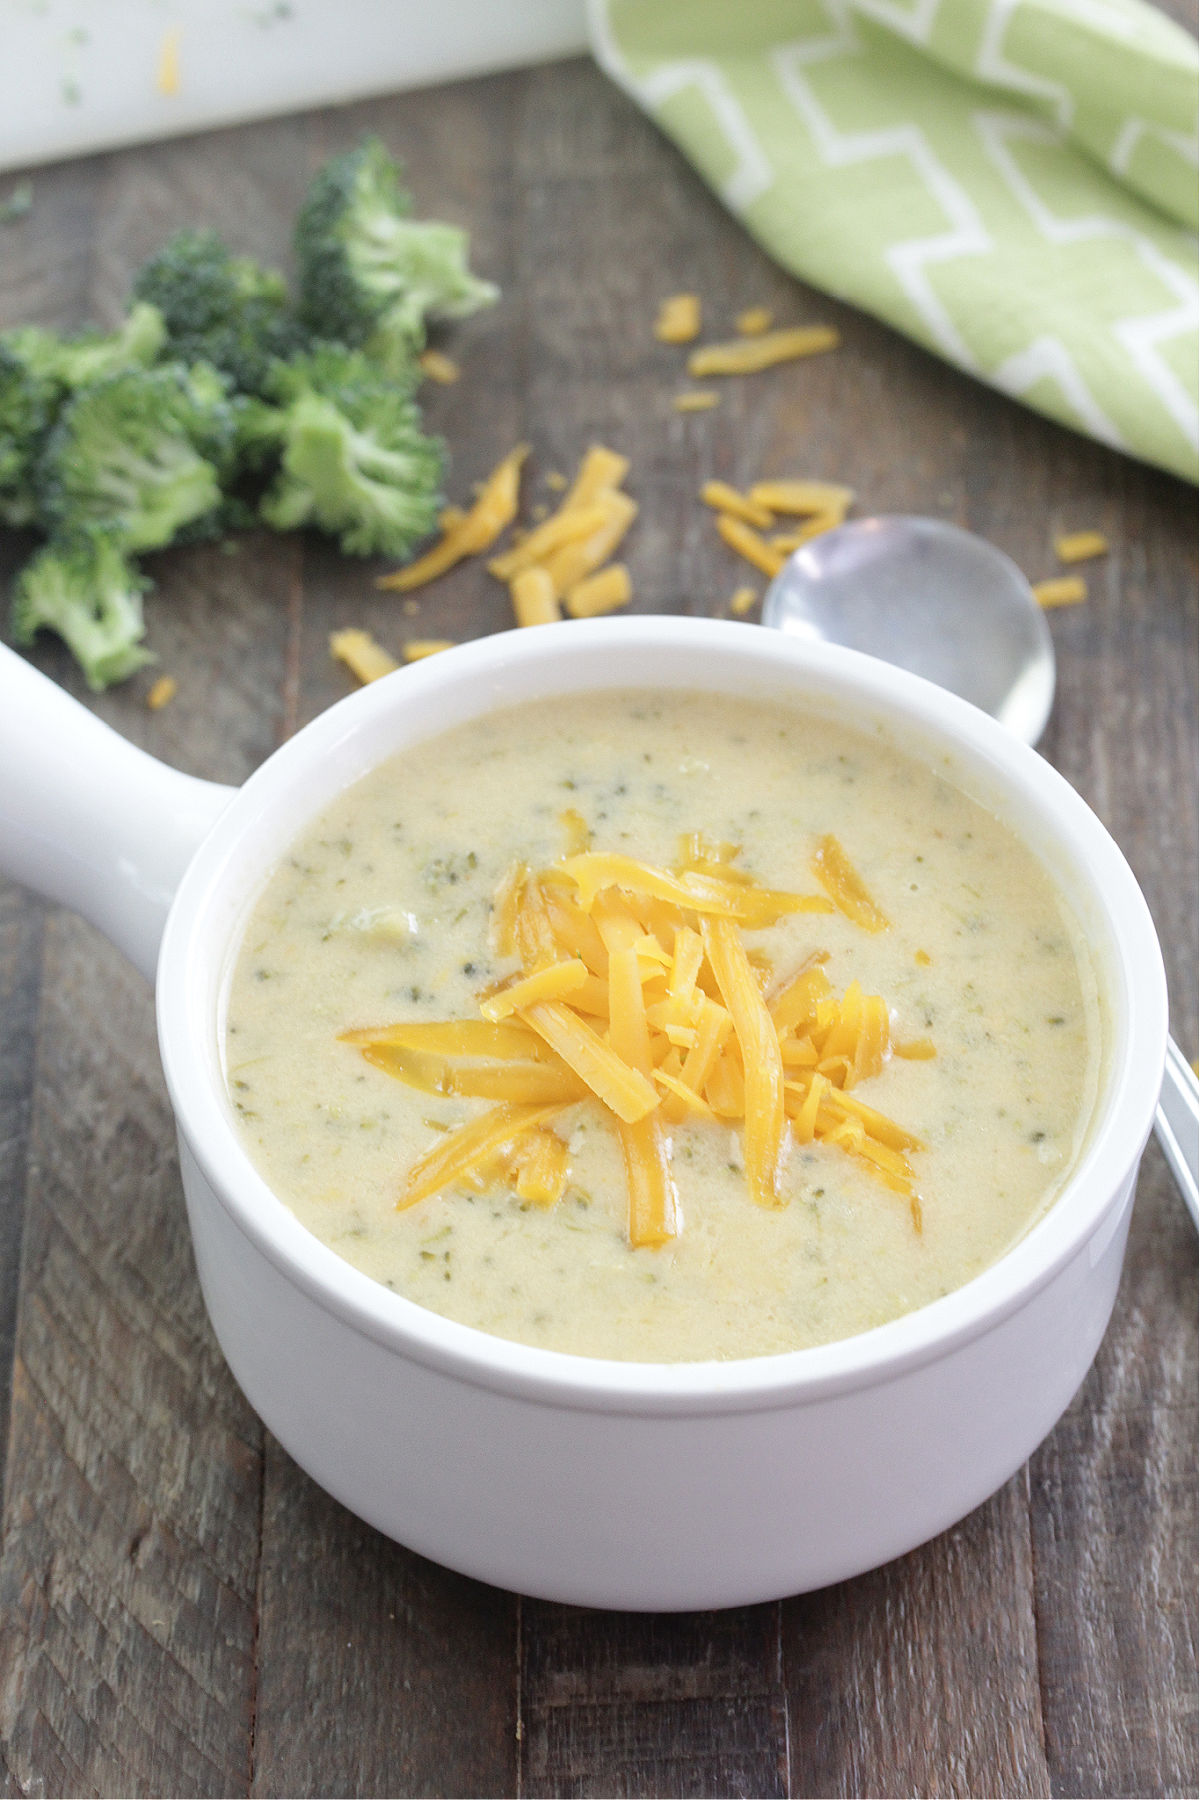 Instant Pot Broccoli Cheddar Soup in a white bowl with grated cheddar cheese on top